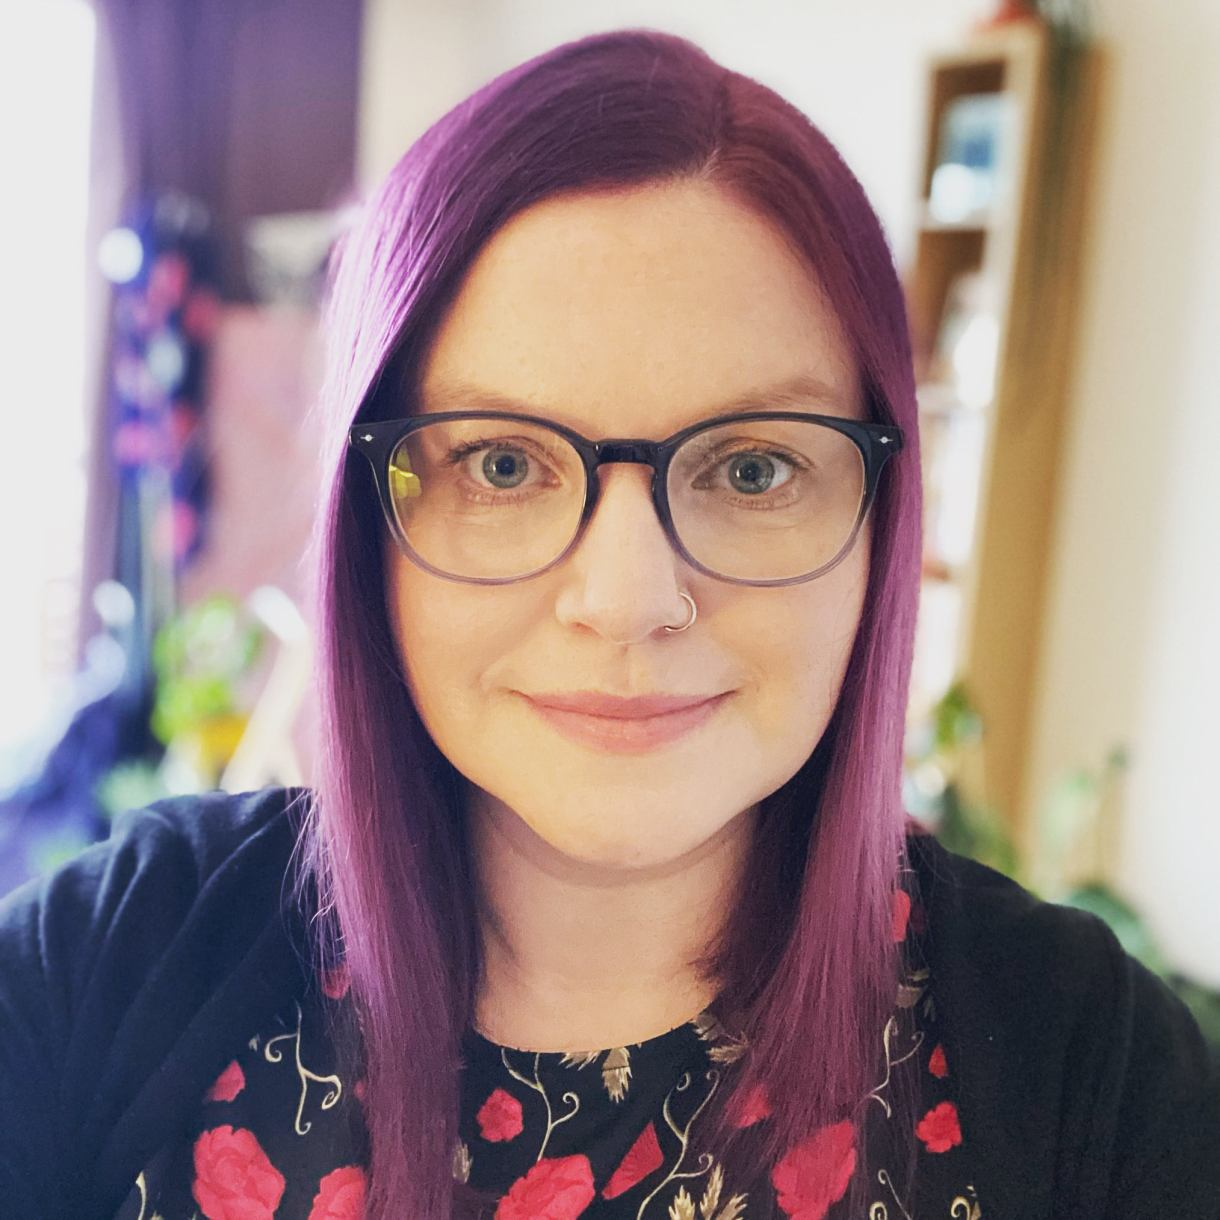 Ellie with purple hair and glasses in Paris